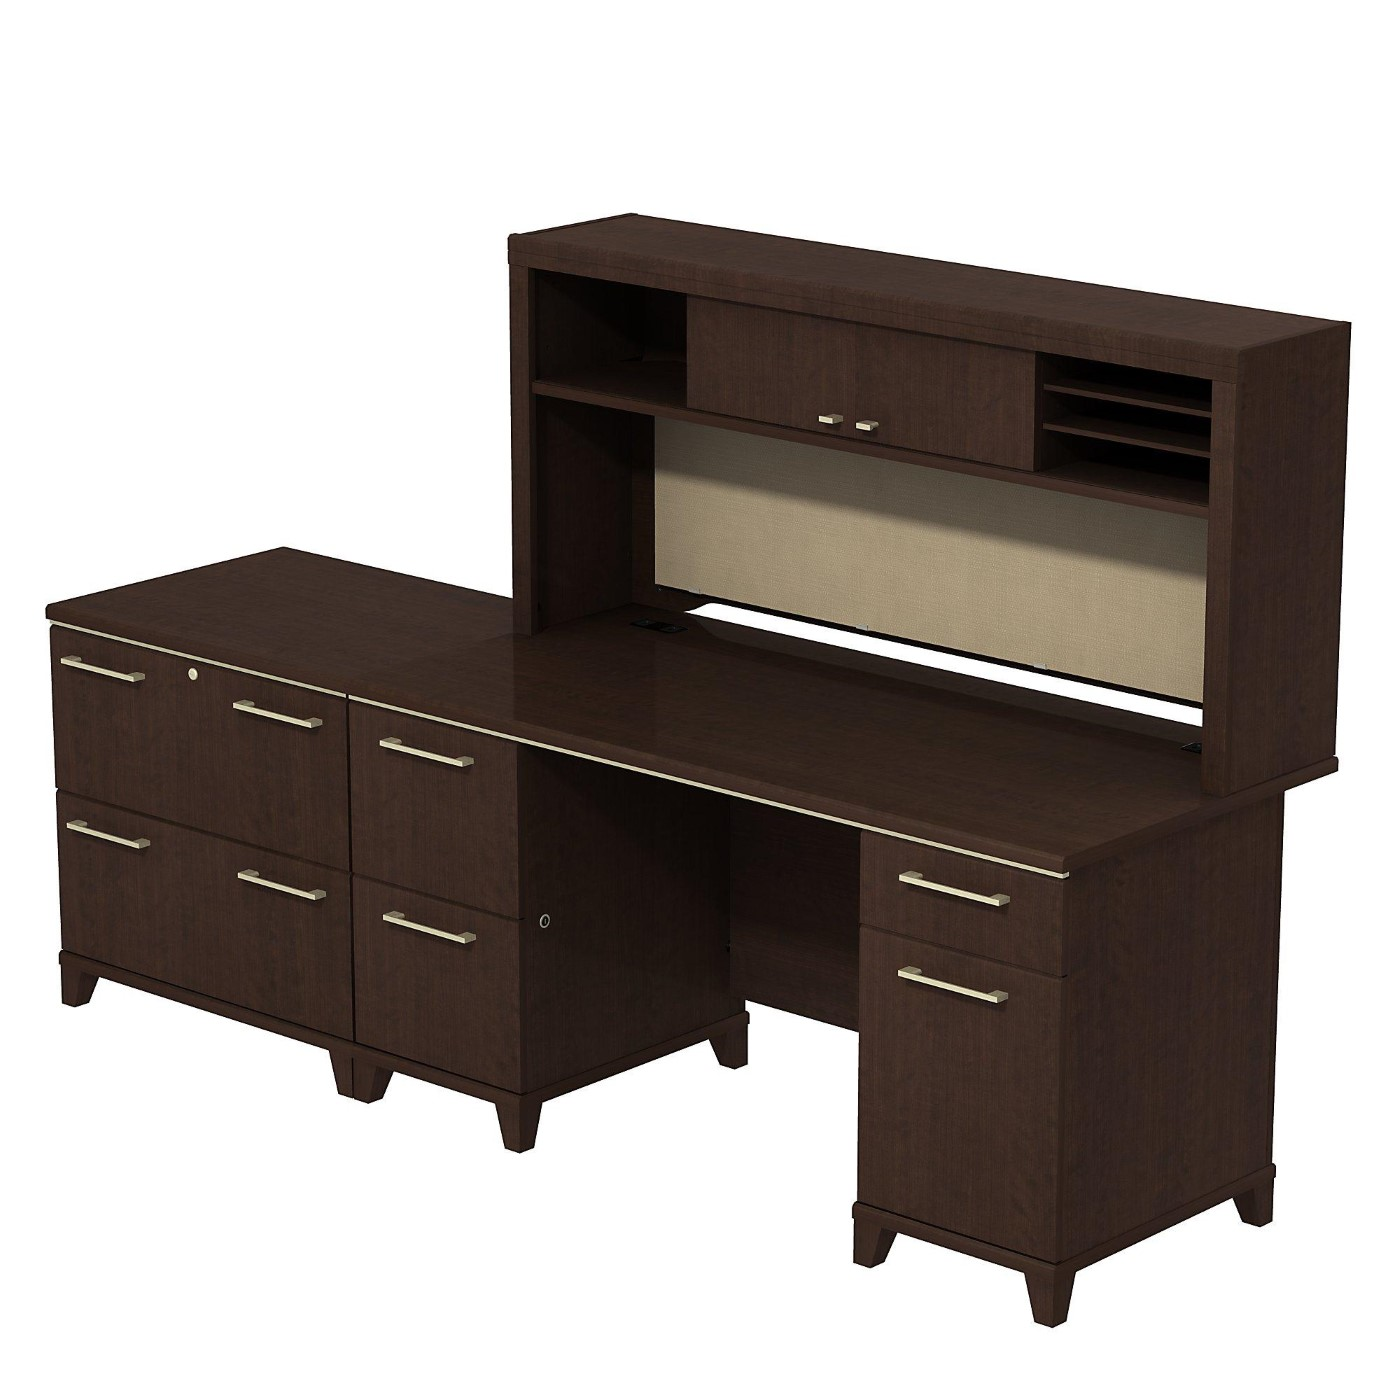 BUSH BUSINESS FURNITURE ENTERPRISE 72W OFFICE DESK WITH HUTCH AND 2 DRAWER LATERAL FILE CABINET. FREE SHIPPING  VIDEO BELOW.